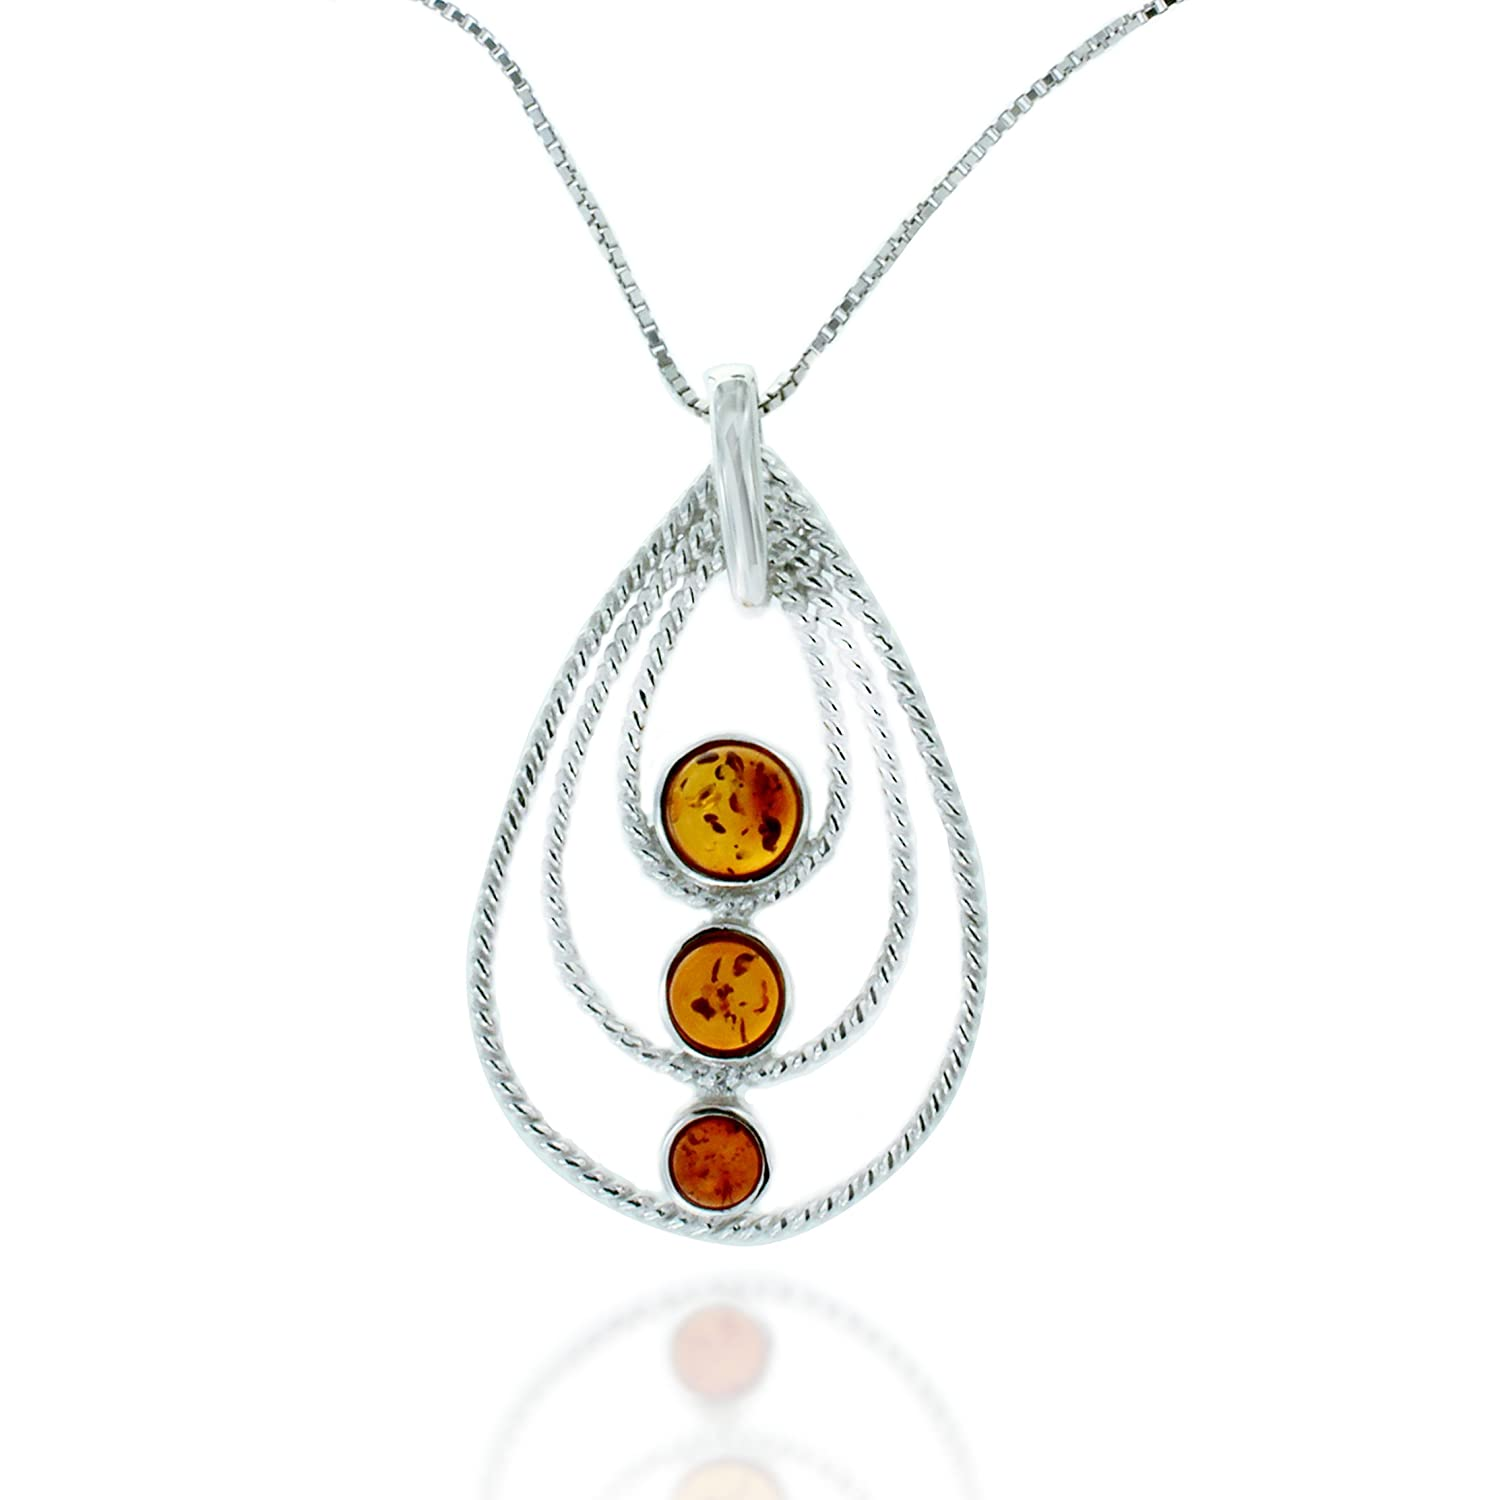 Chuvora Rhodium Plated 925 Sterling Silver Amber Gemstone Three Tier Teardrop Pendant Necklace 18 inches